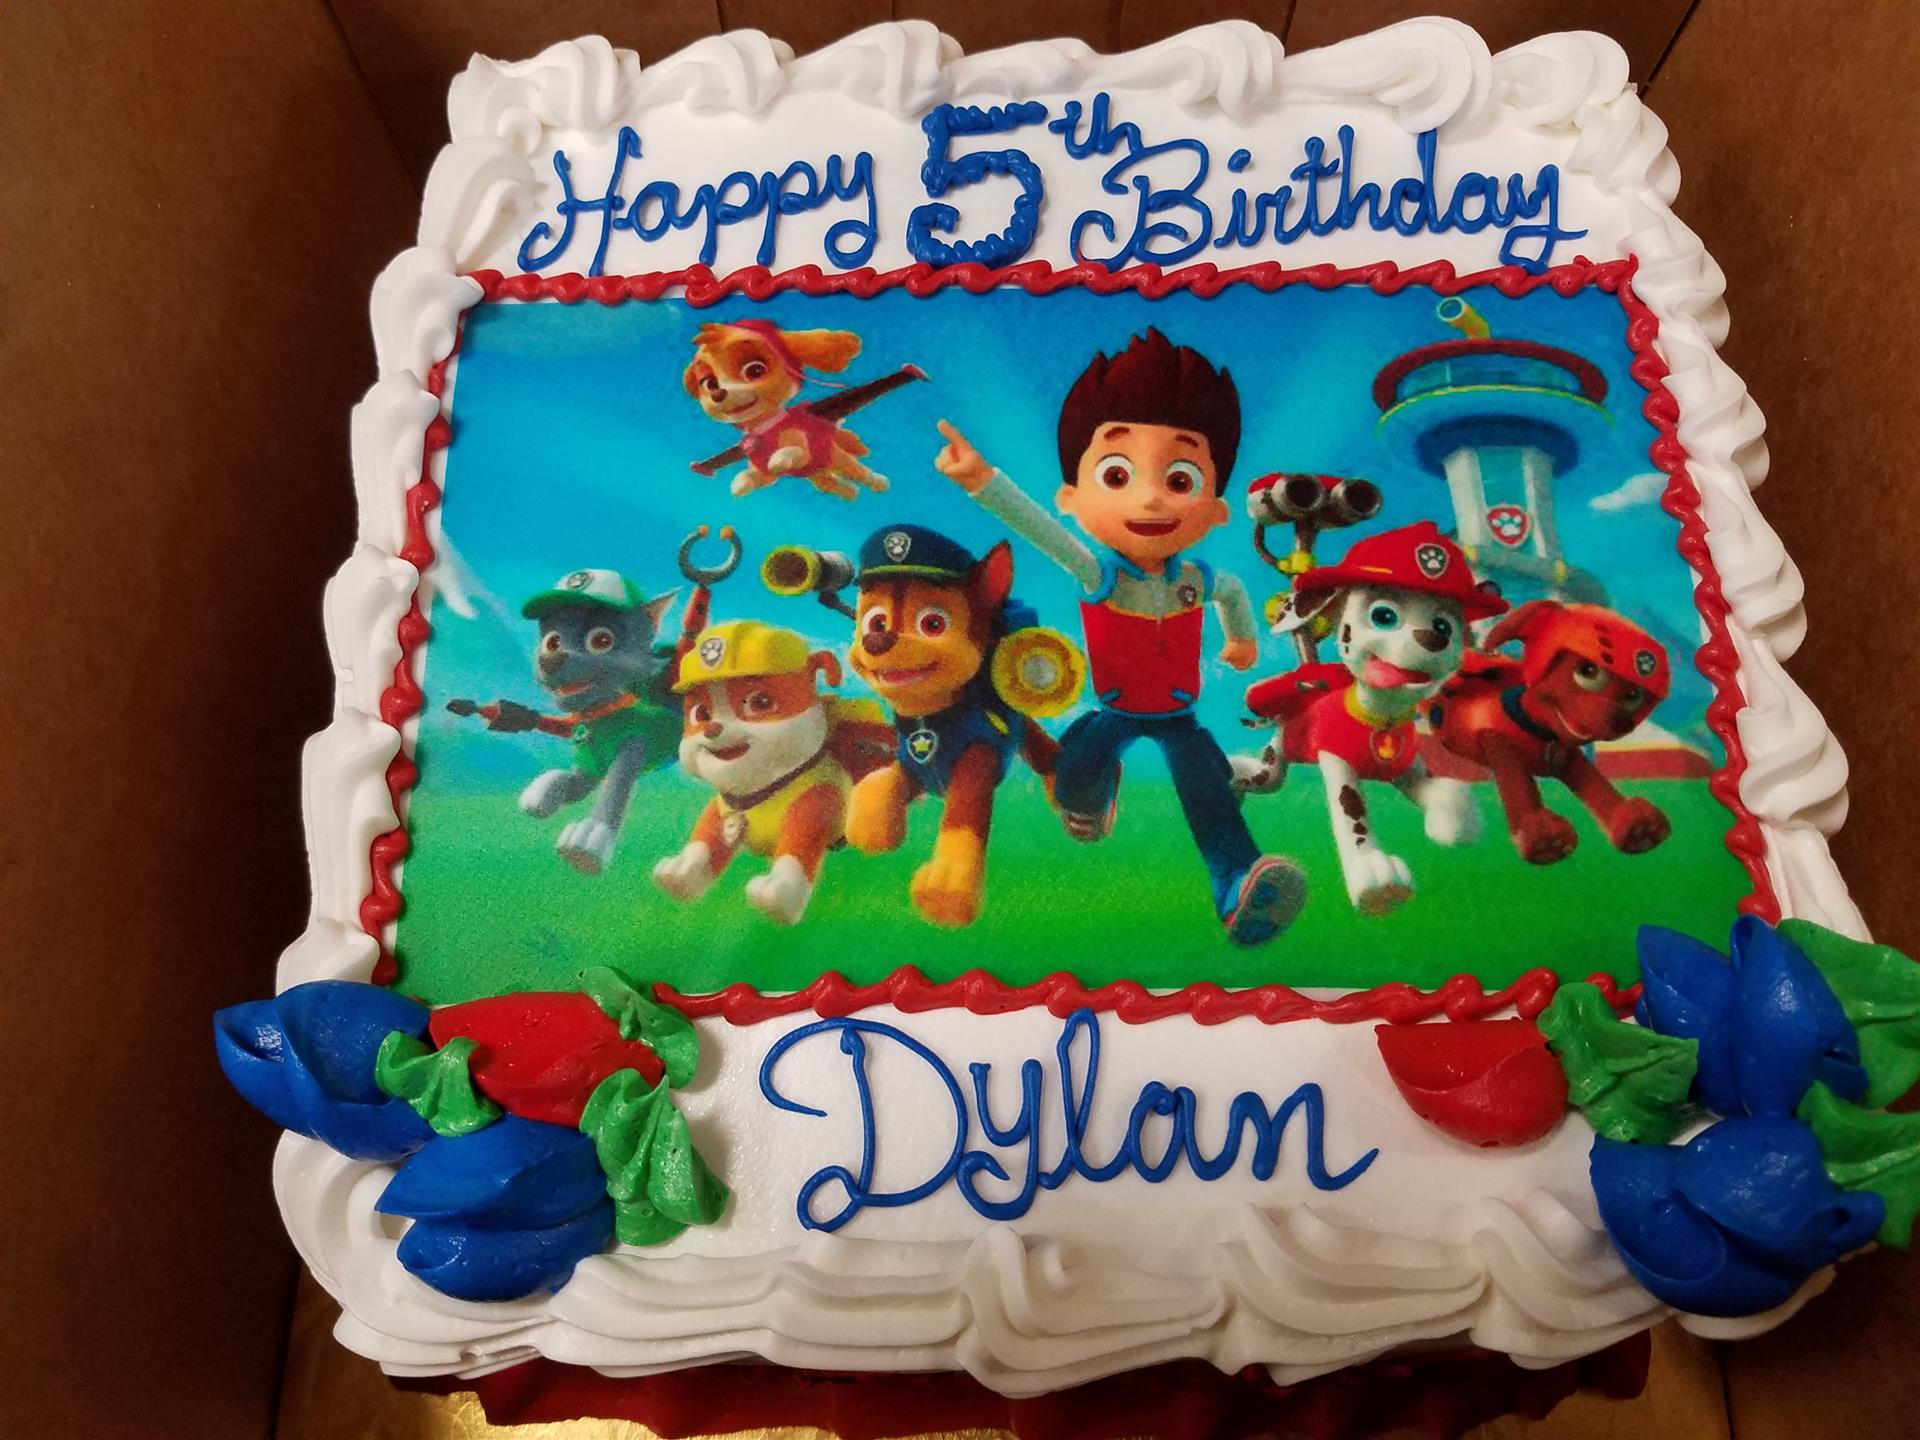 Birthday cake for Dylan with Paw Patrol Design on it.